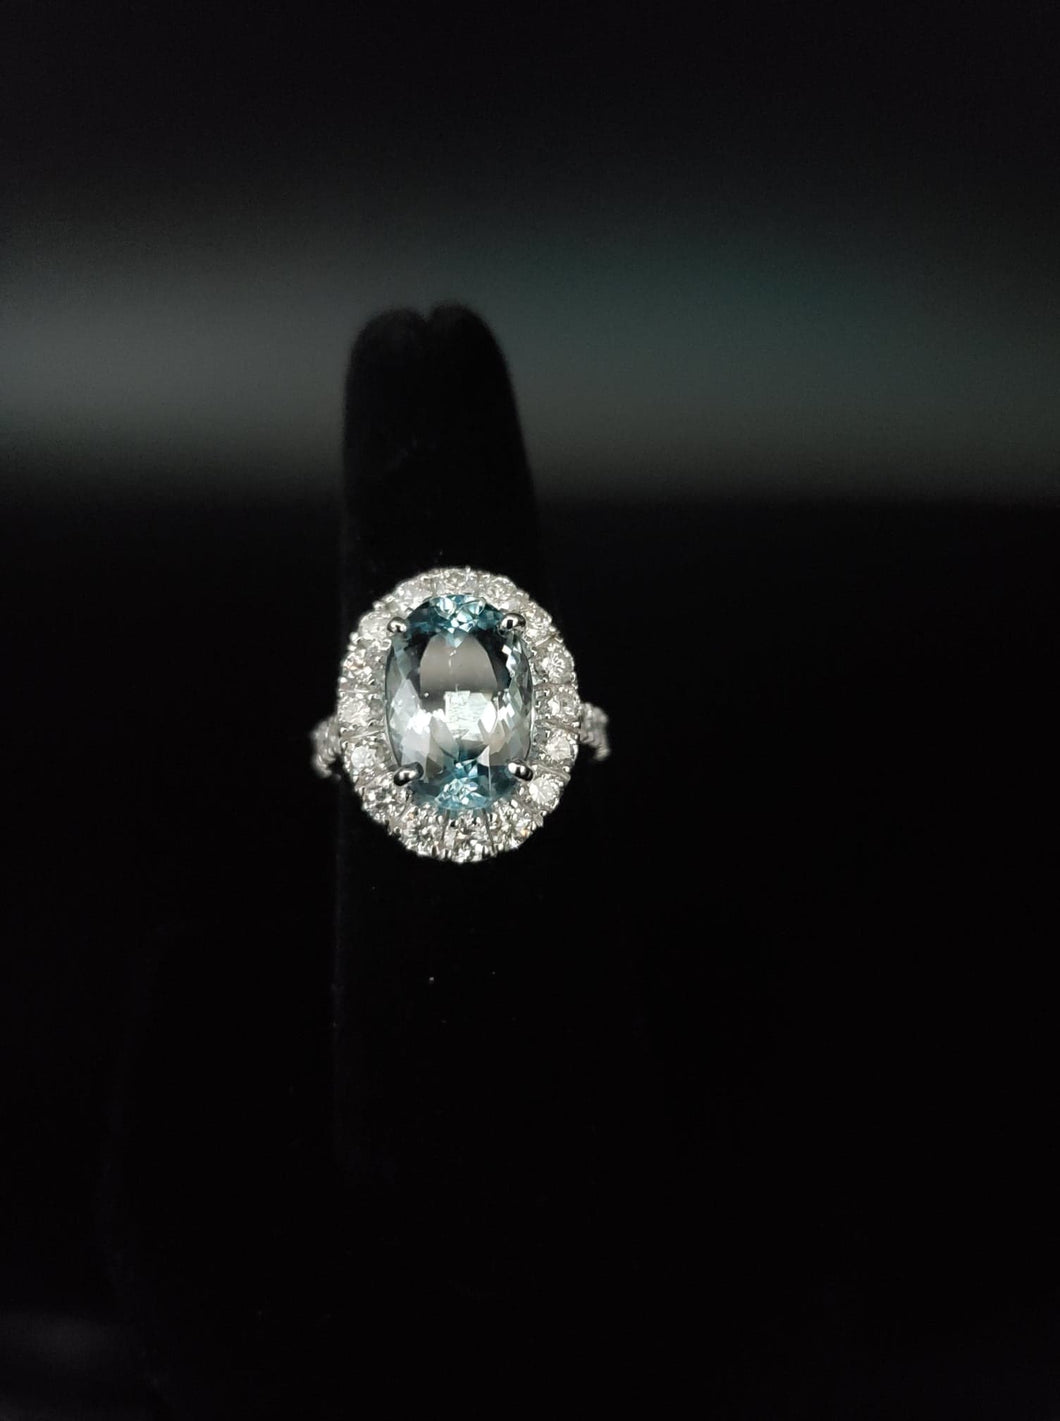 Fine Estate 5.13ct Light Blue Aquamarine Ring in 14kt White Gold with 1.90ct SI G Color Fine Diamonds.